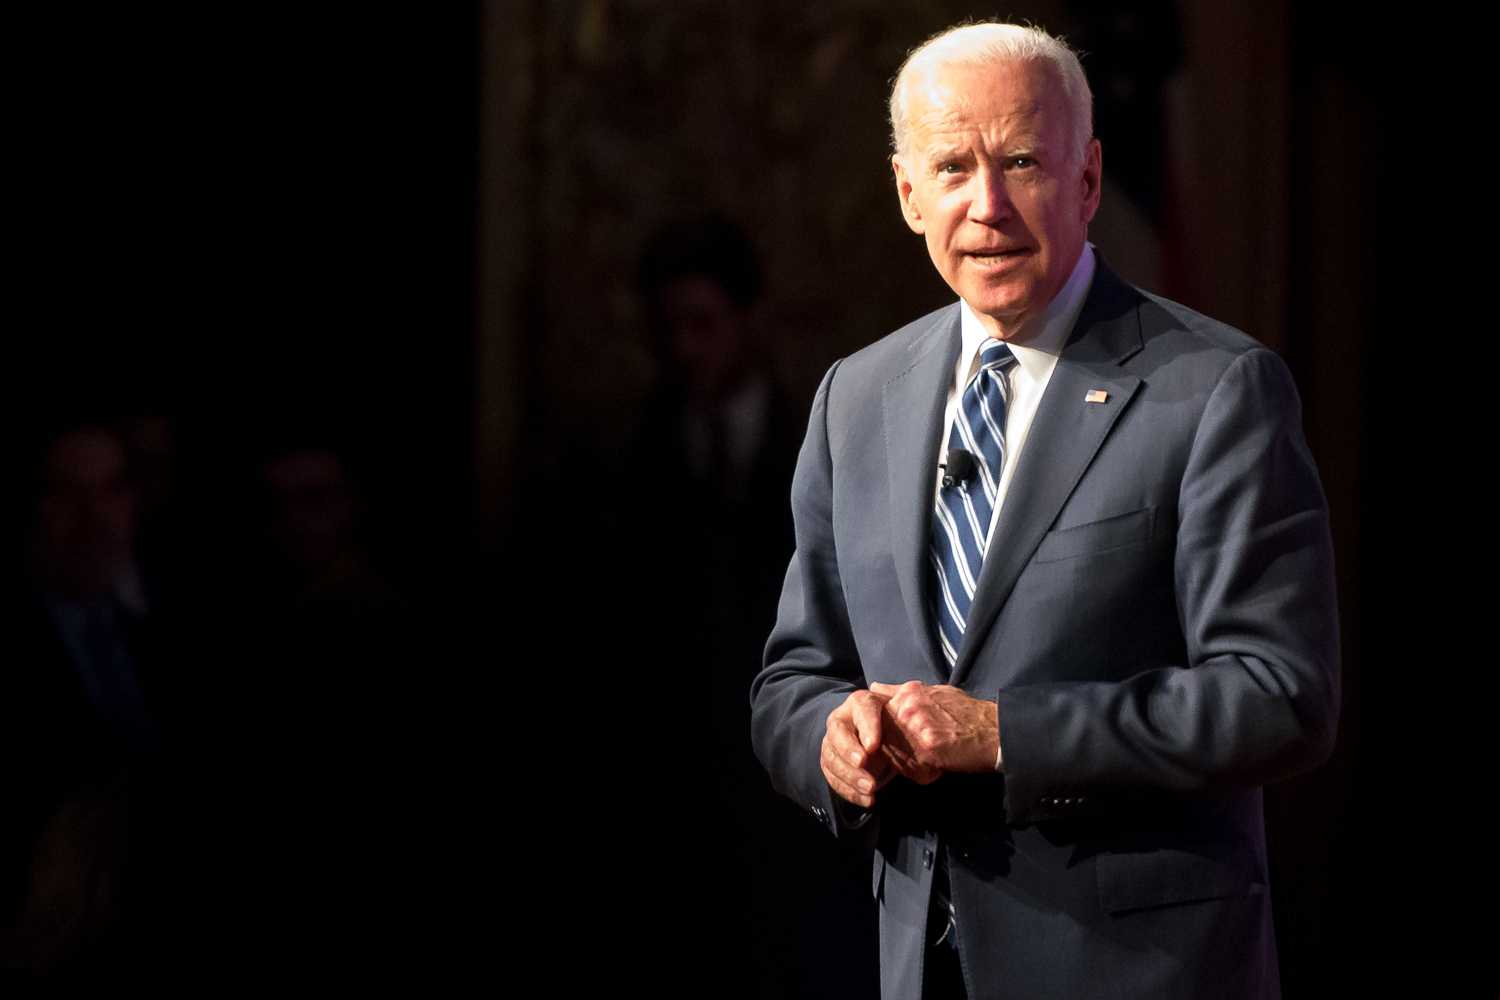 Former Vice President Joe Biden addresses the audience one final time before the conclusion of Monday night's American Promise Tour event at Carnegie Music Hall.